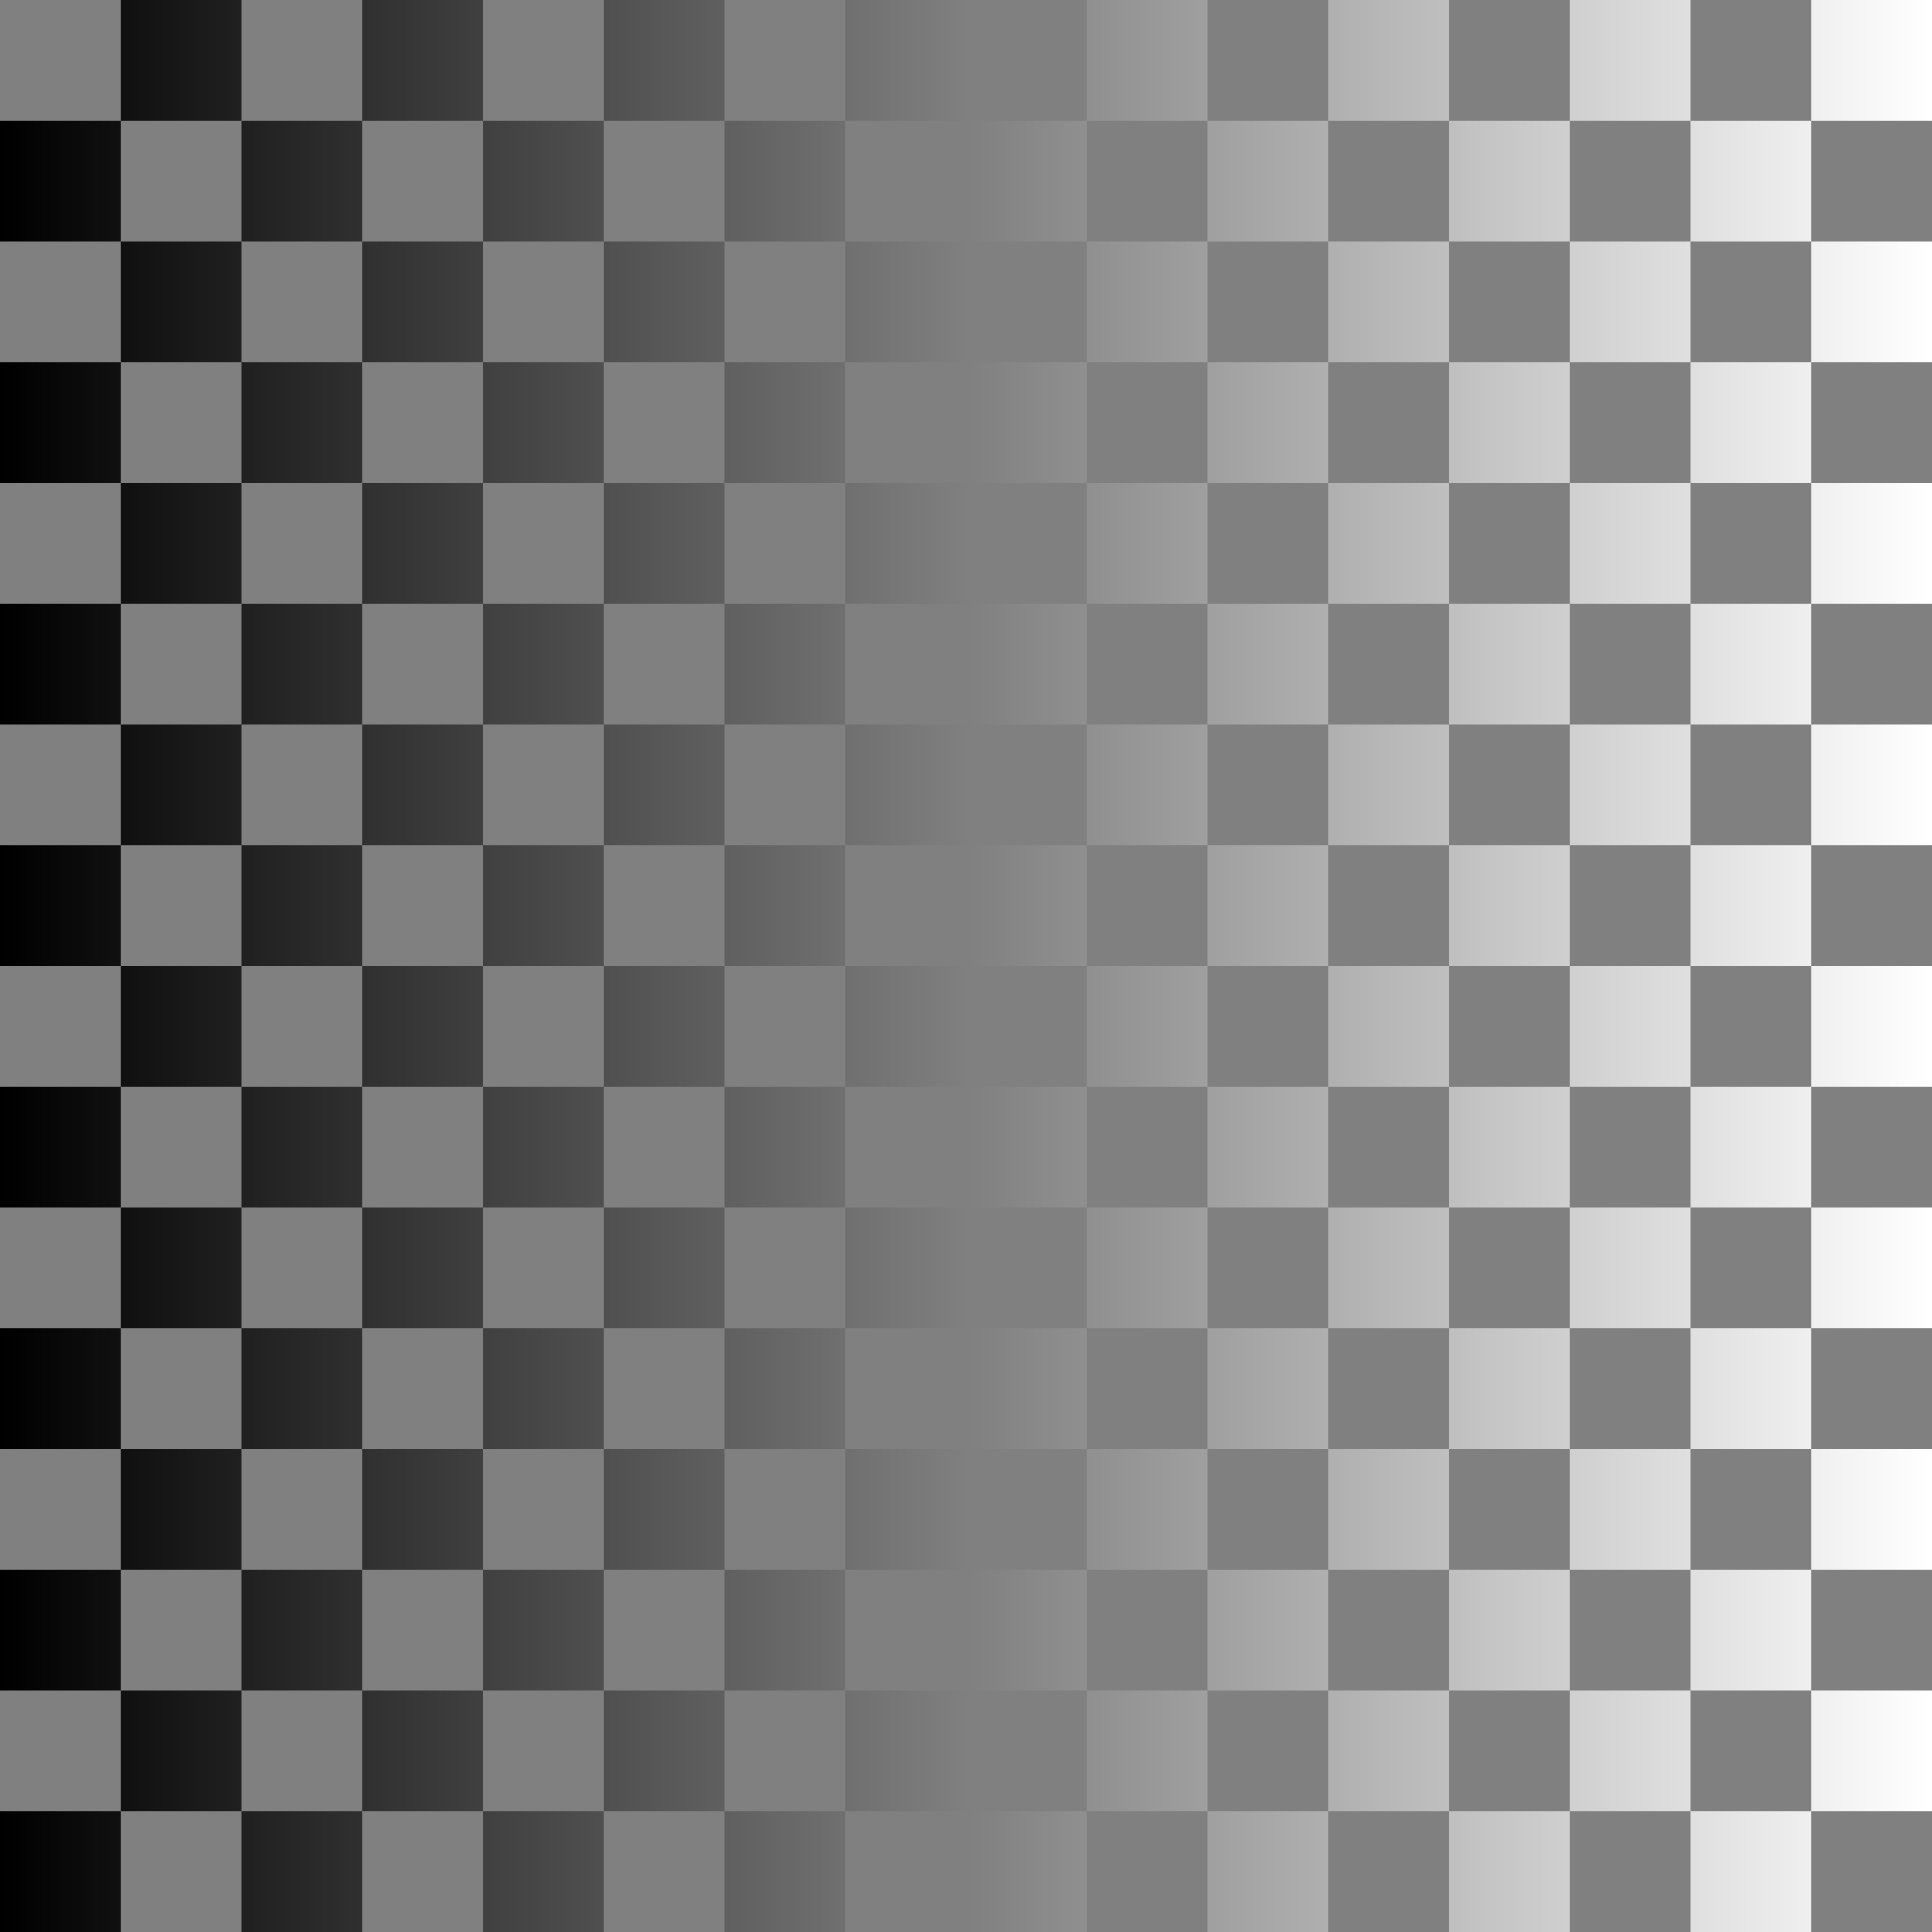 chessboard-illusion by 10binary